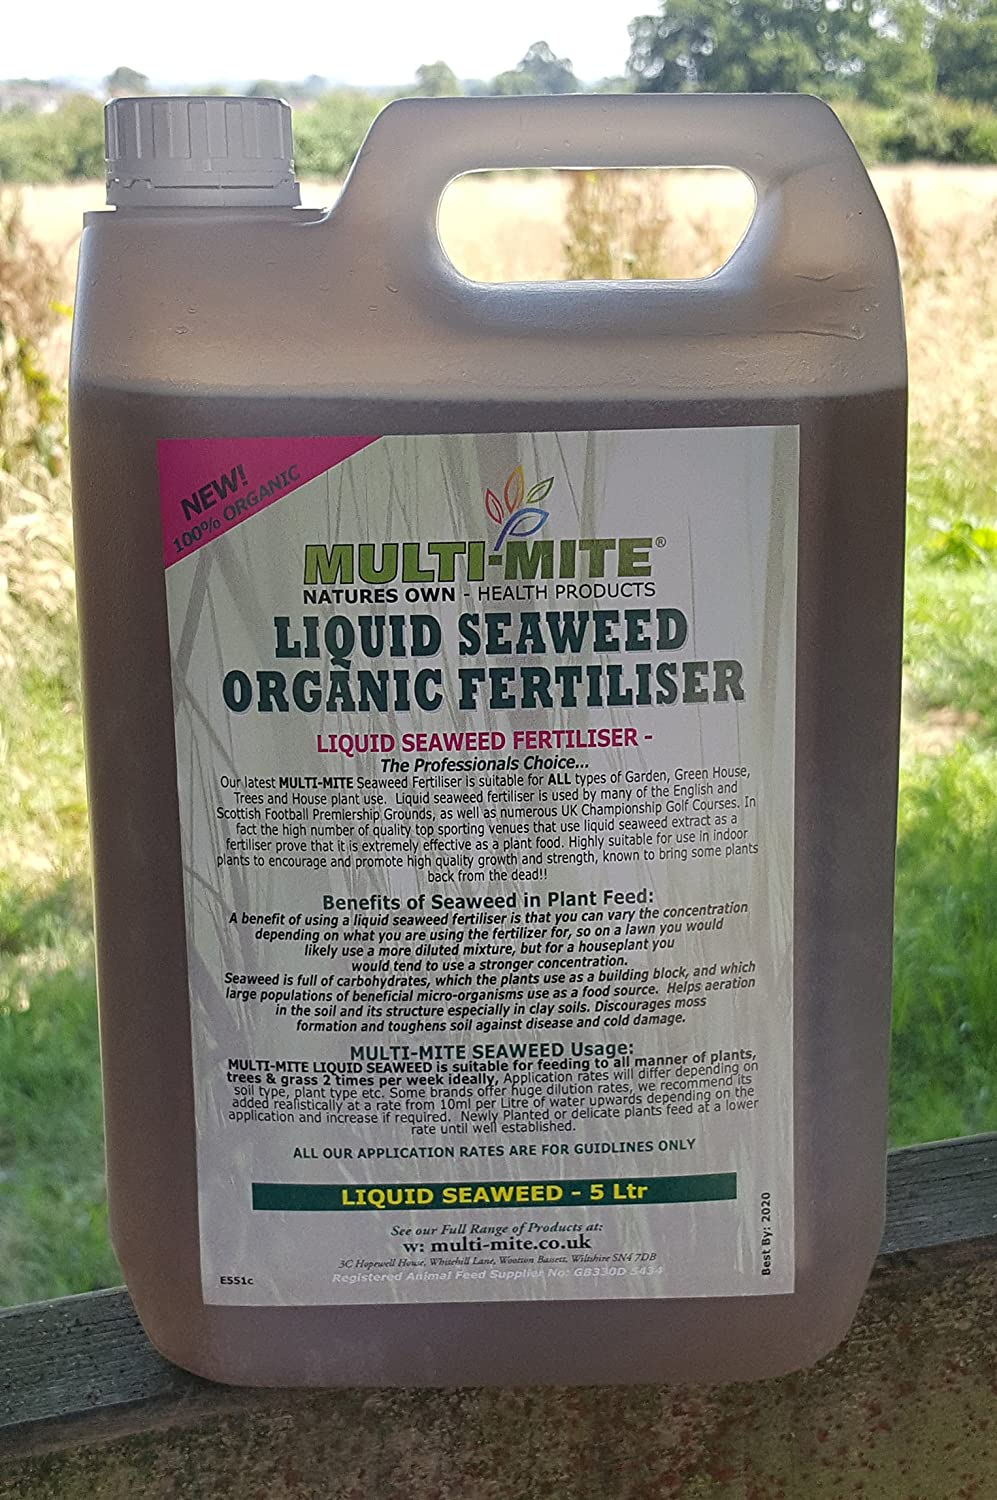 5 Ltr LIQUID SEAWEED FREE DELIVERY - Organic Concentrate - Multi-Mite®